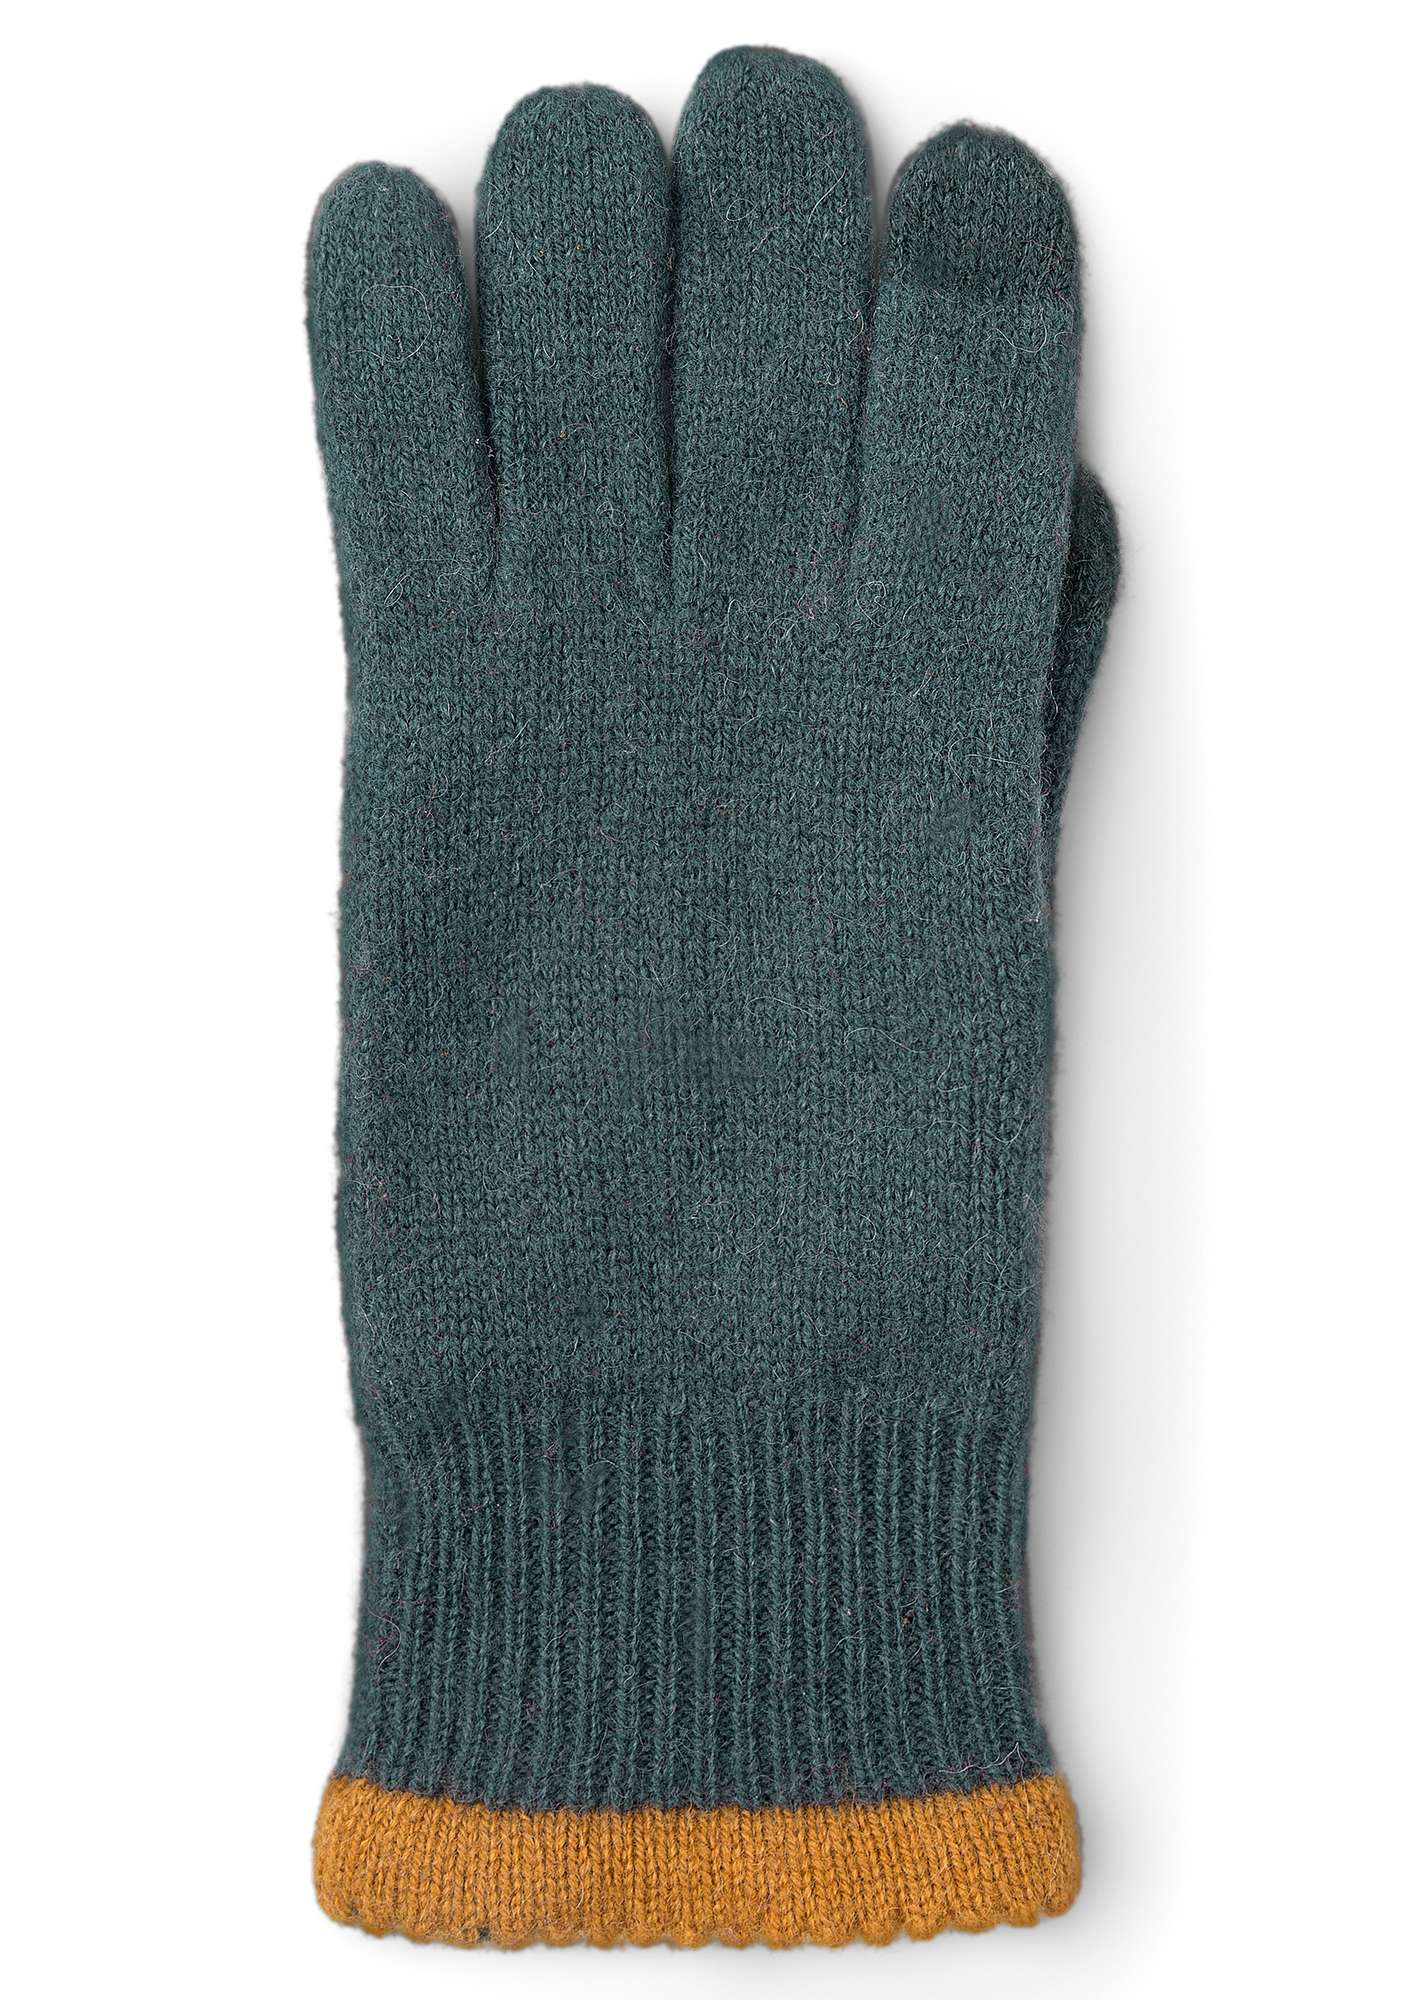 Alpaca blend gloves with touchscreen function agave